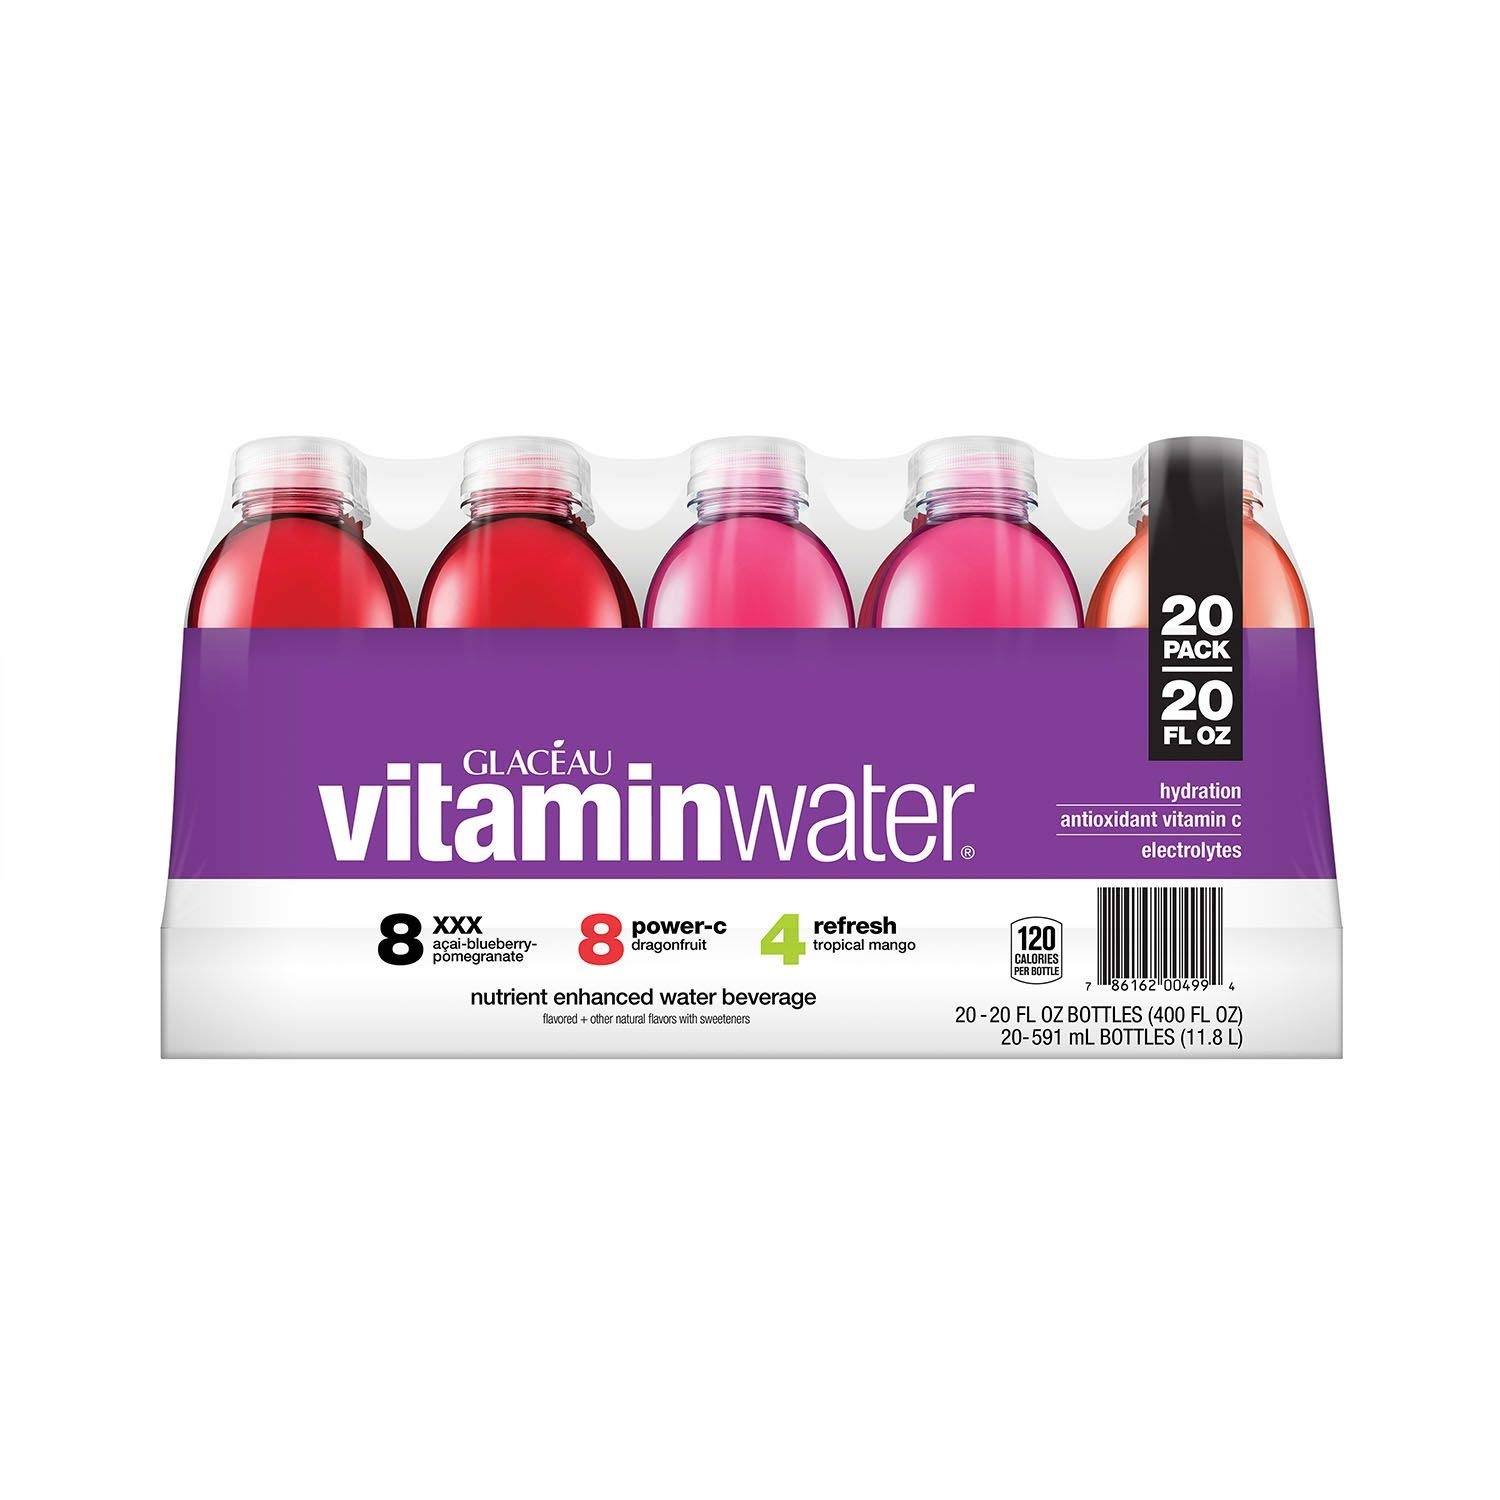 Glaceau vitaminwater Variety Pack 20 oz, 20 pk. (pack of 4) A1 by Store-383